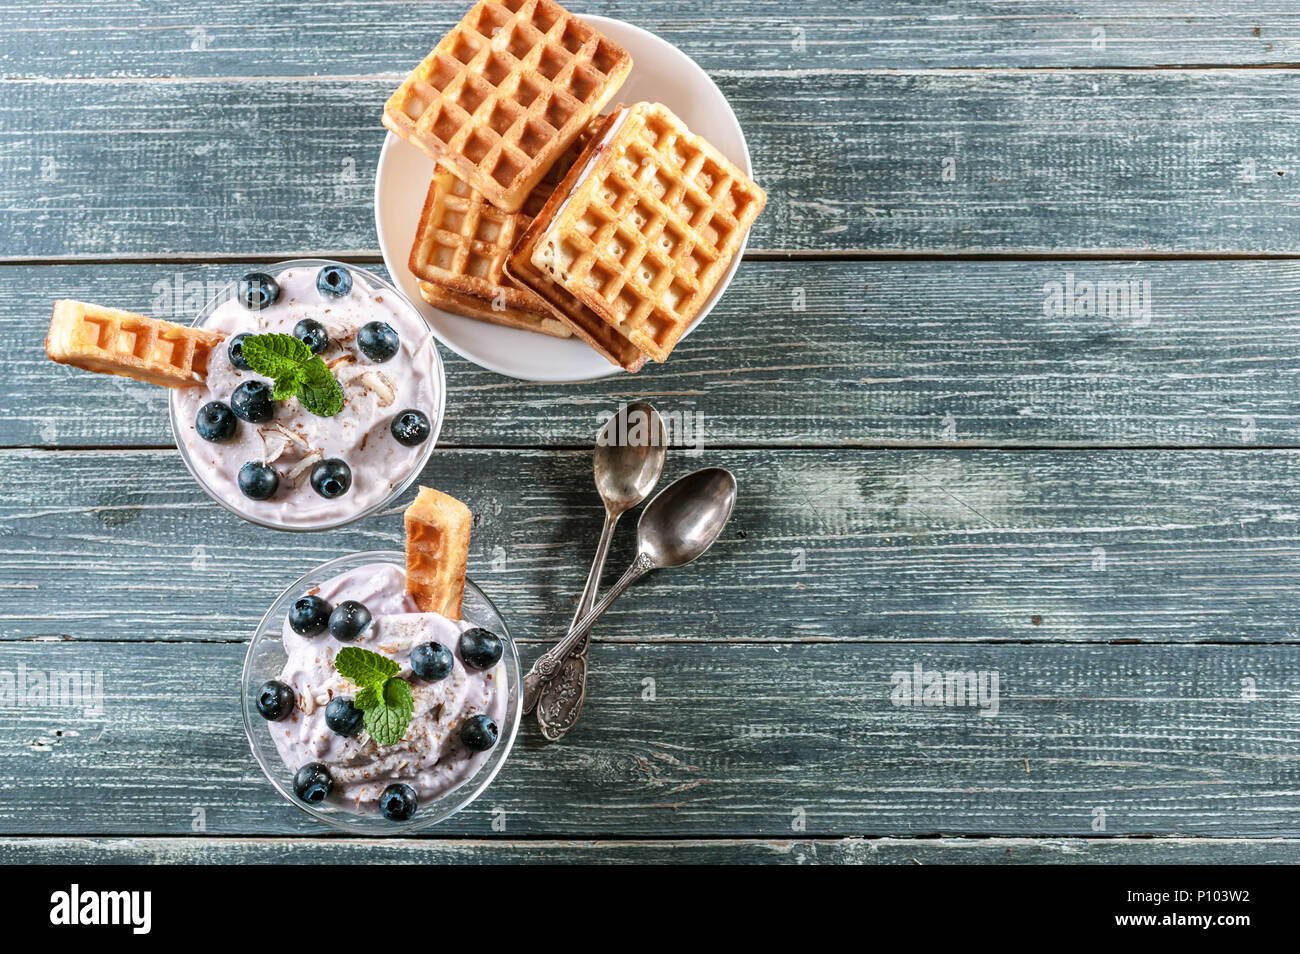 Curd dessert with blueberries in a glass cup and homemade Viennese waffles on a wooden background. Top view. Copy space Stock Photo